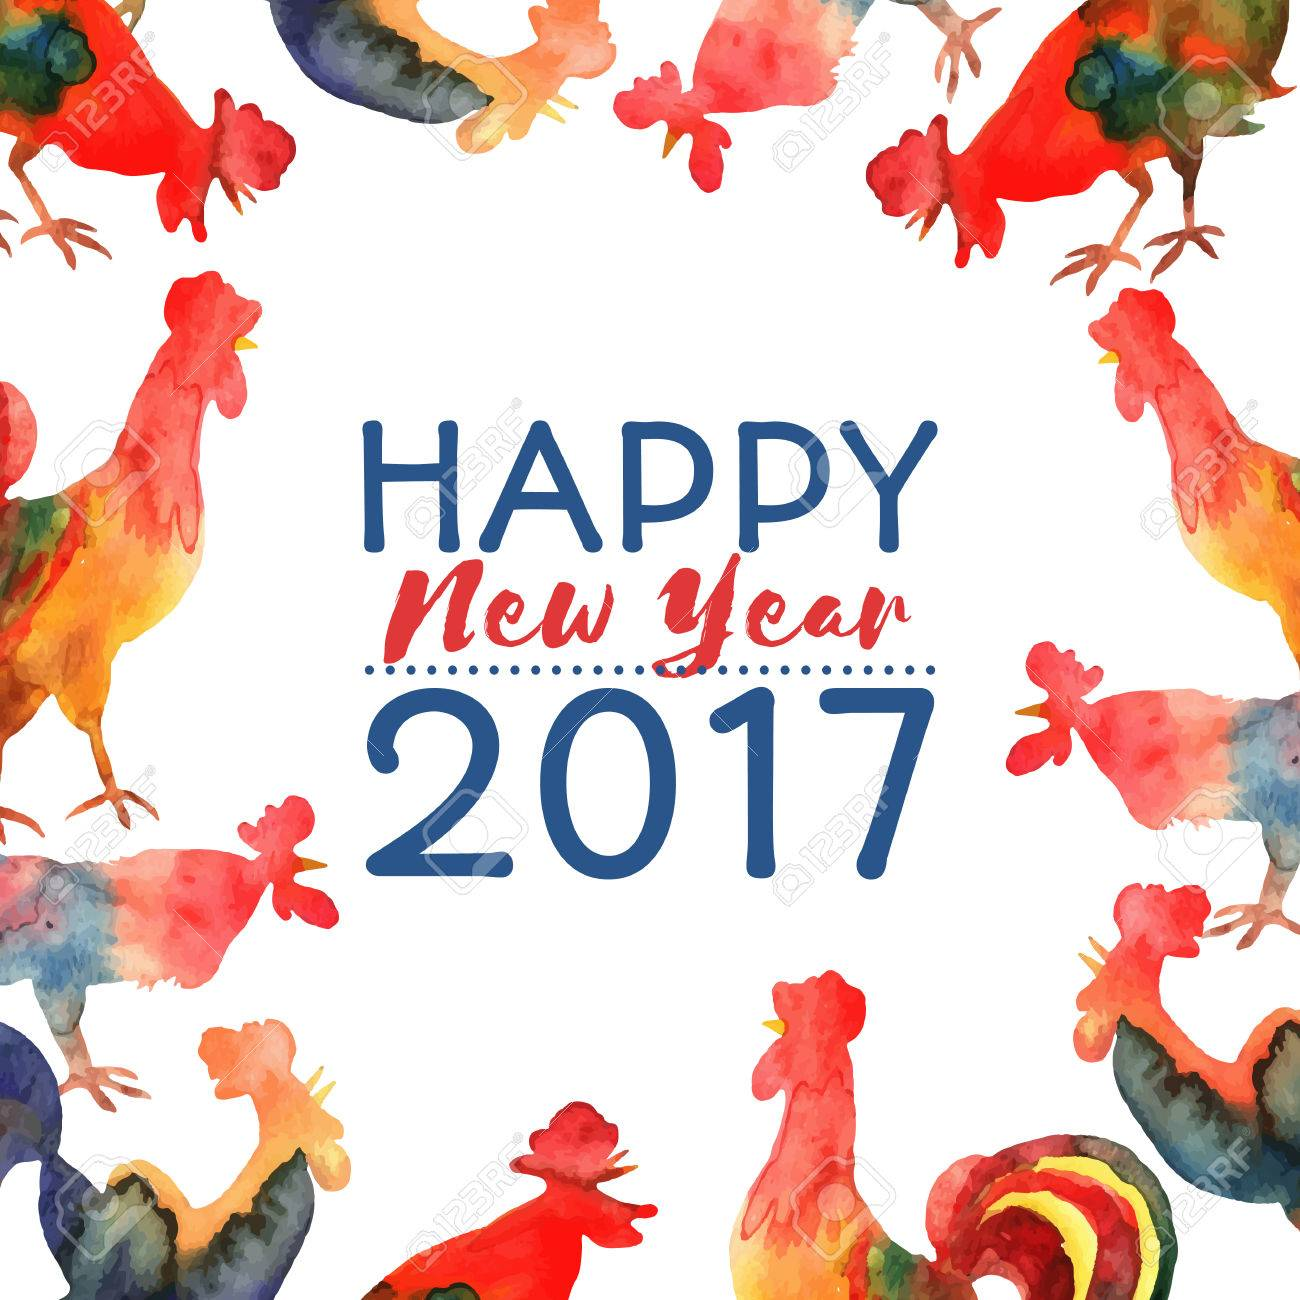 Vector   Vector Frame With Fire Cocks And Text Happy New Year 2017. Chinese  Calendar Zodiac For 2017 New Year Of Rooster. Editable Isolated Elements.